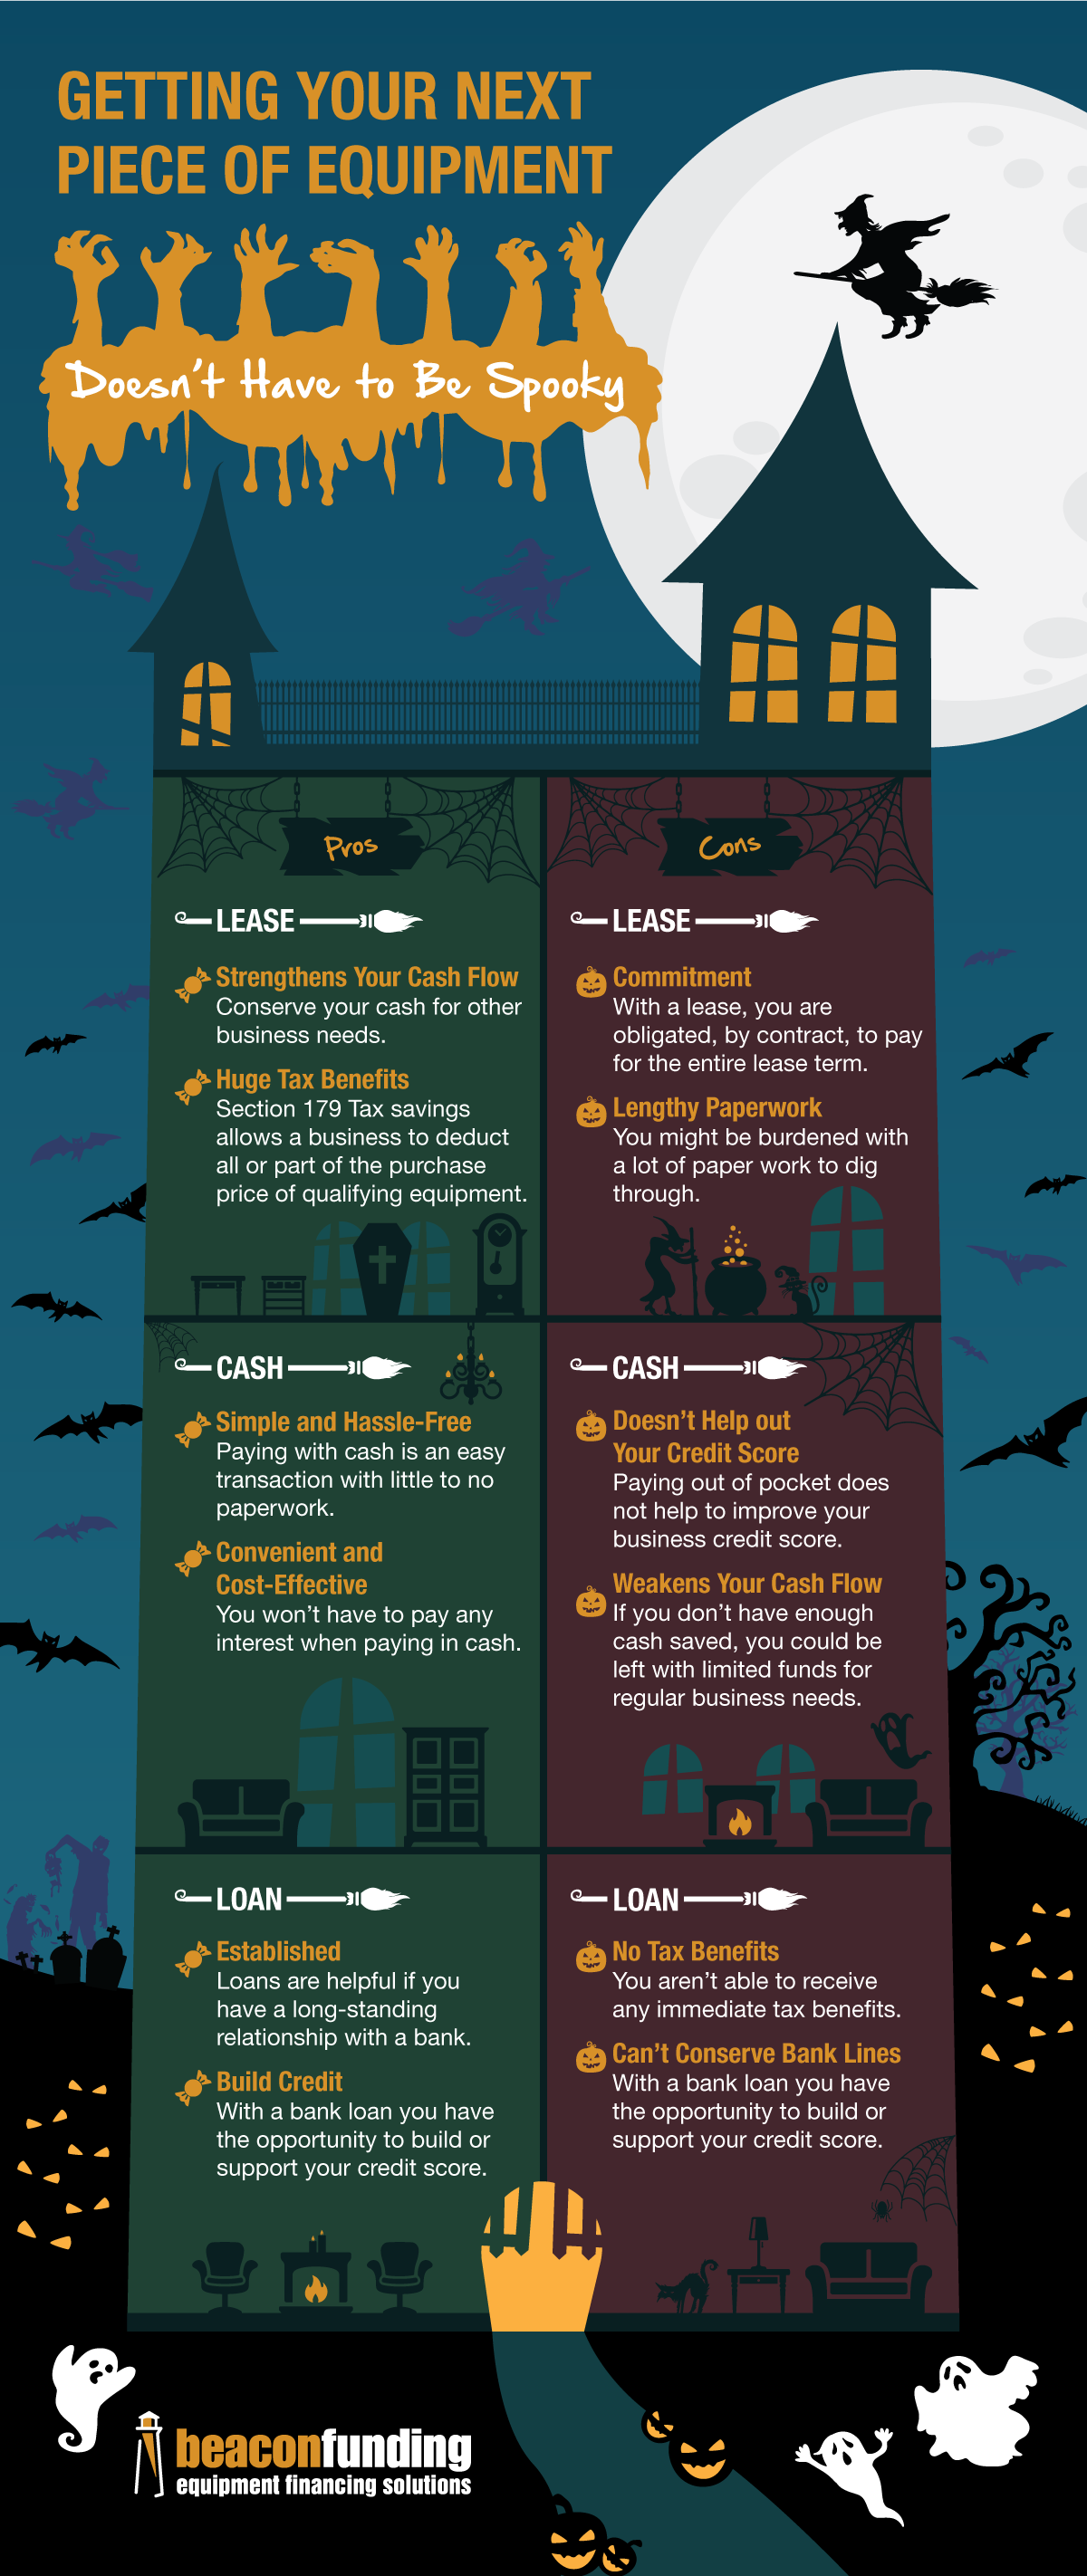 Halloween Edition Equipment Purchase Options Infographic